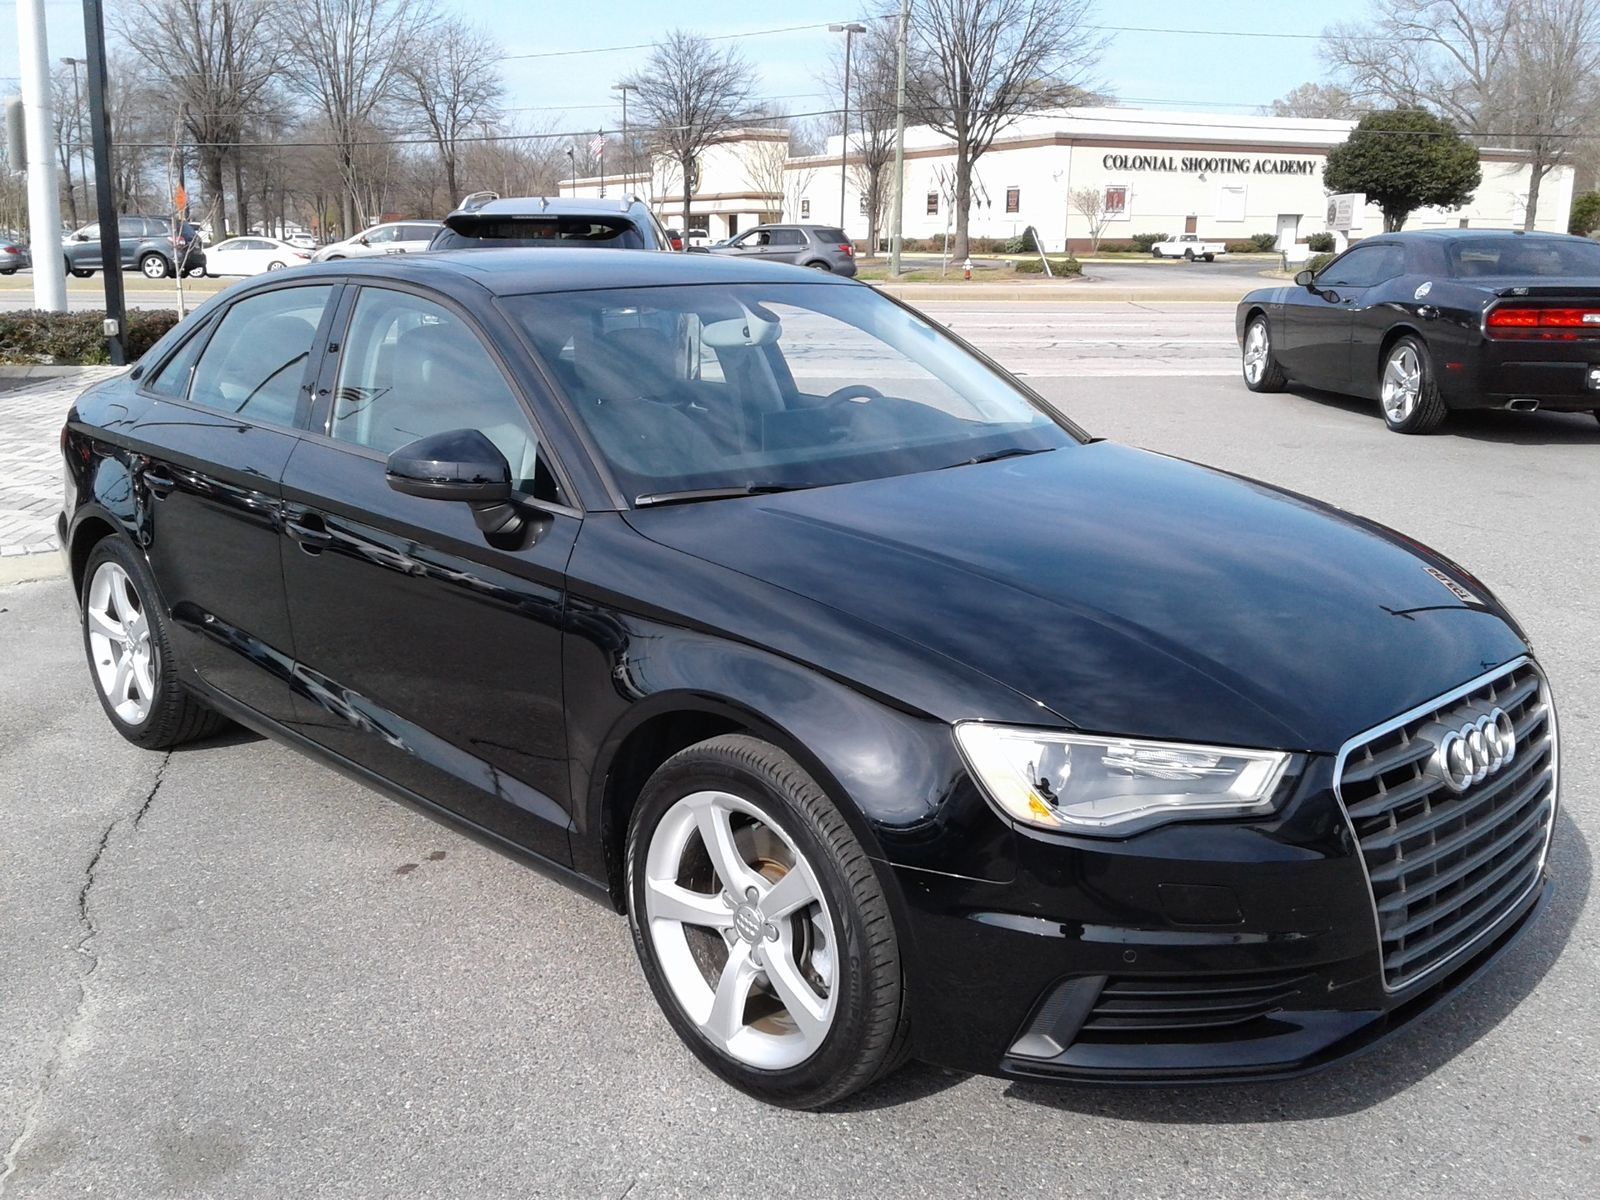 and select dealers in of popular style best audipremium appealing va picture audi for automotive city pic xcode virginia